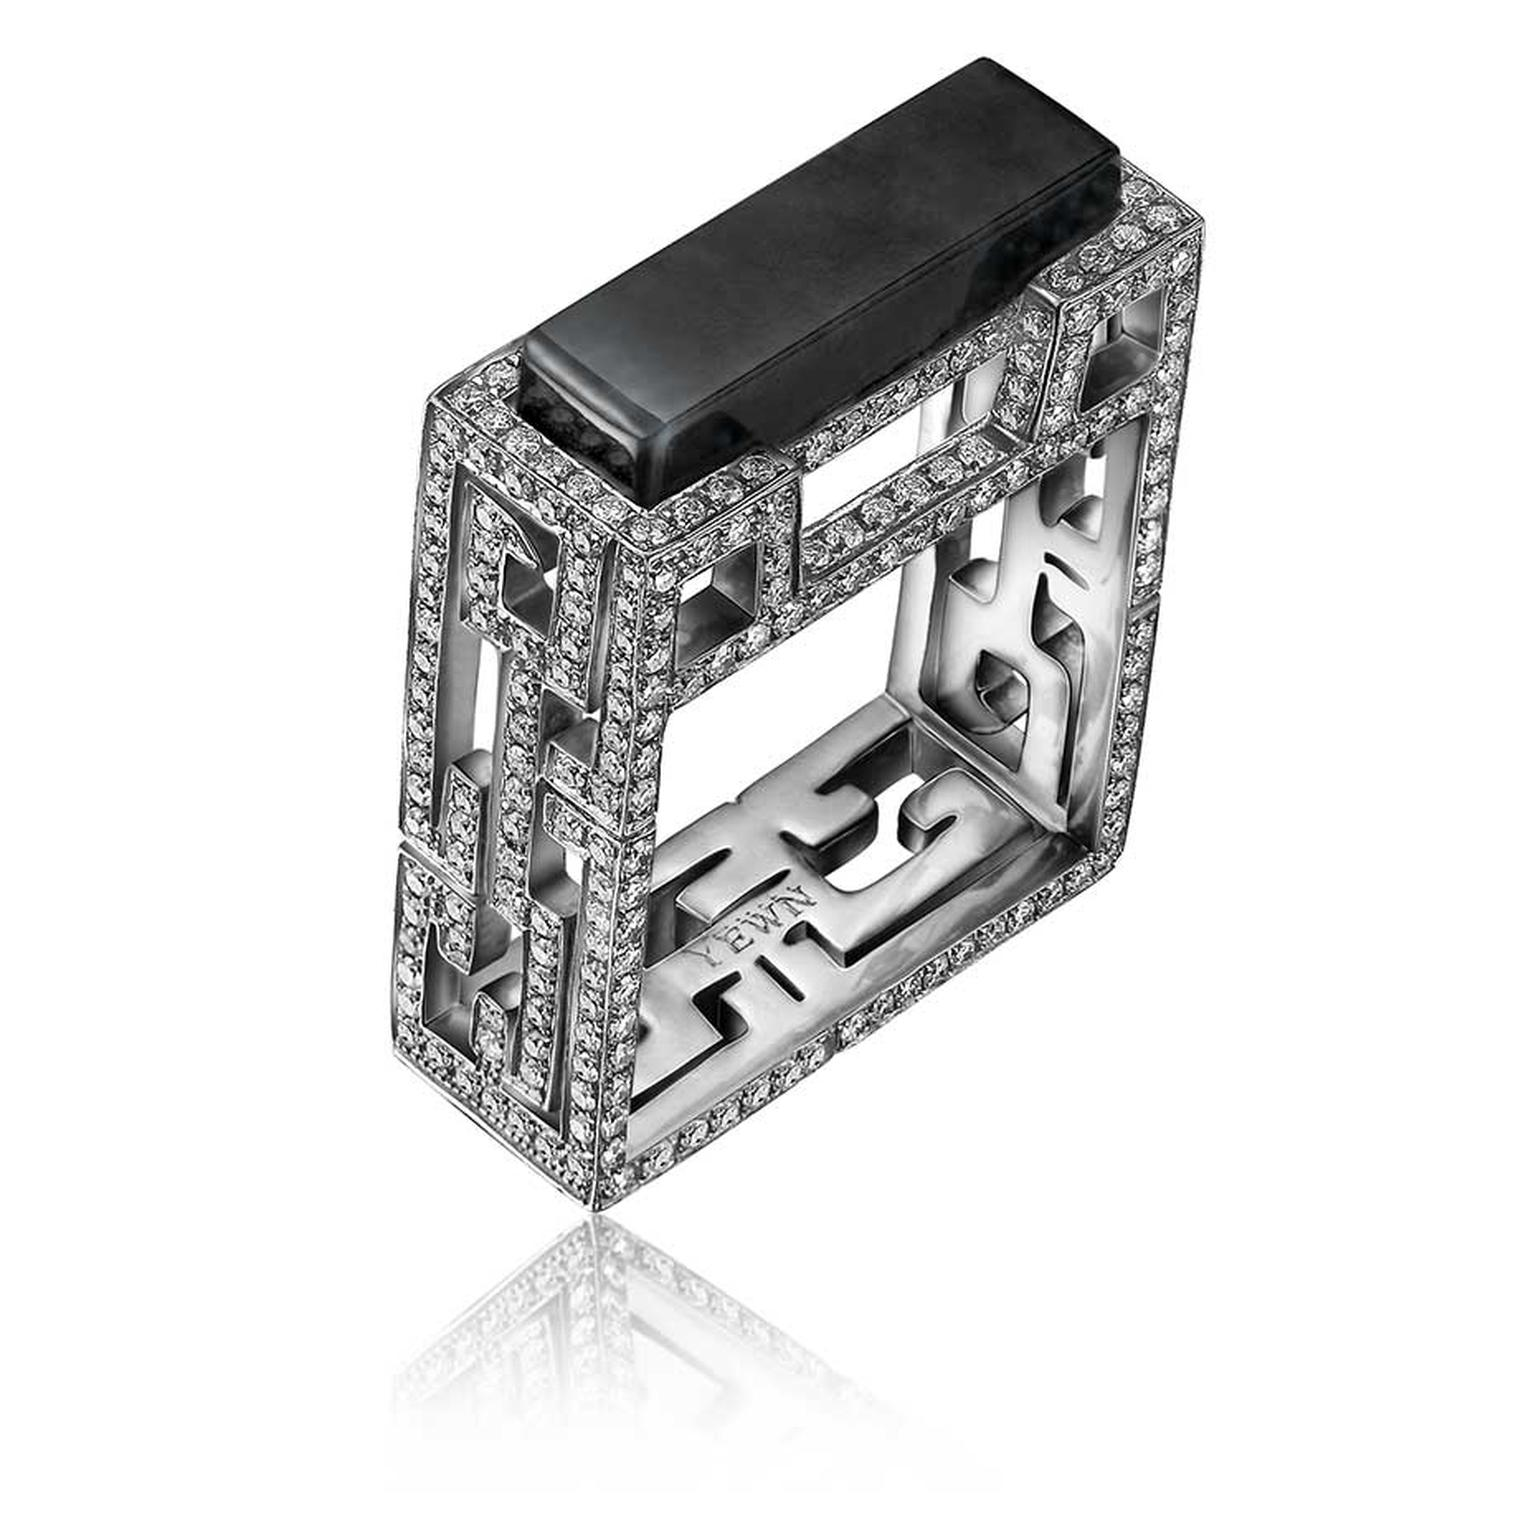 Yewn Chinese Lattice collection black onyx ring with diamonds.